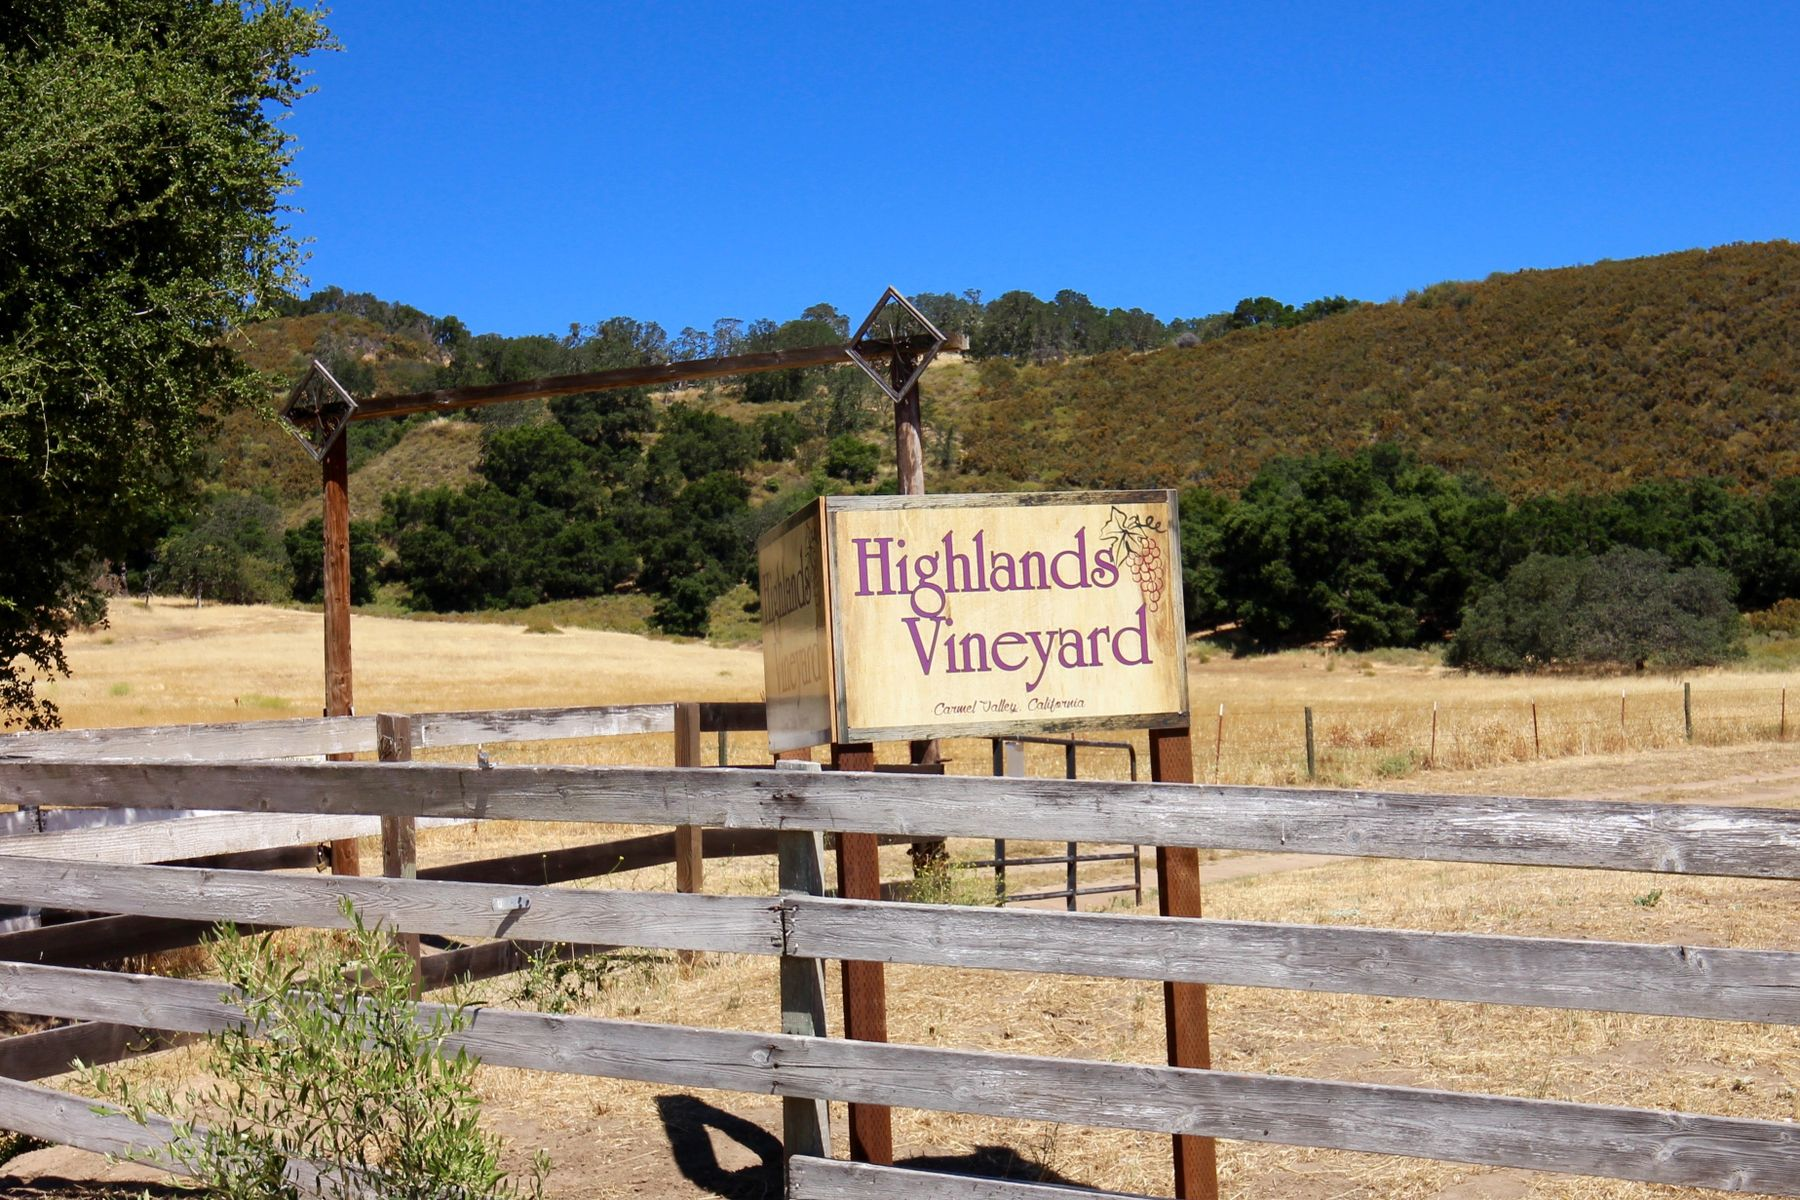 Vineyard Real Estate for Sale at CARMEL VALLEY HIGHLANDS VINEYARD 39995 Carmel Valley Road Greenfield, California 93927 United States